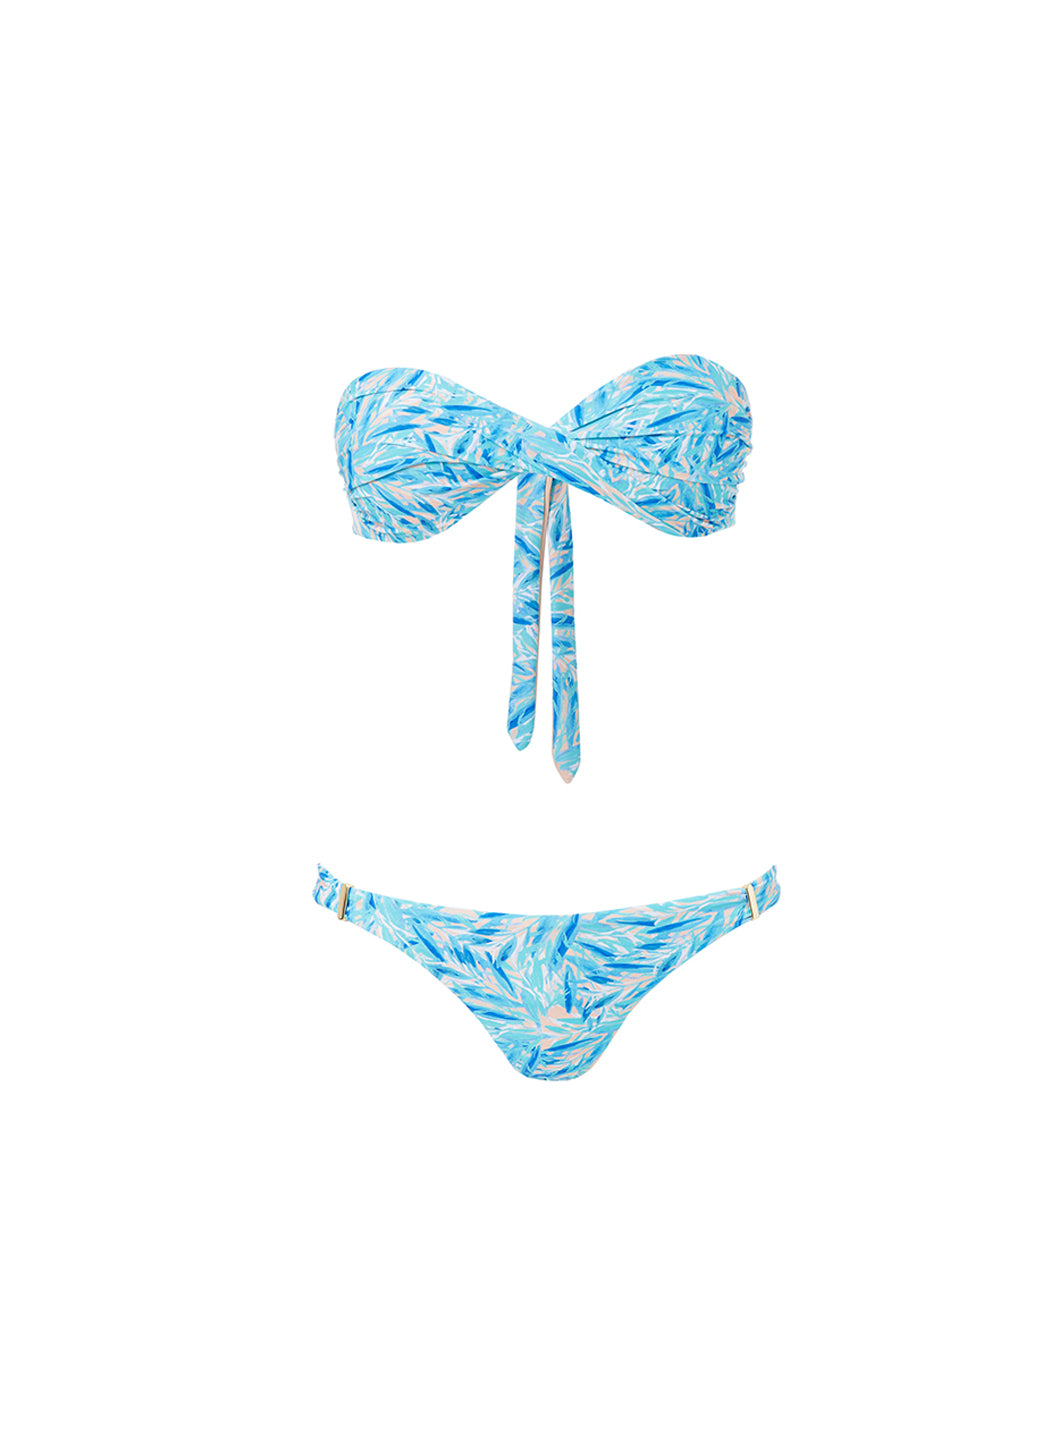 Martinique Blue Leaf Bandeau Padded Twist Bikini - Melissa Odabash Swimwear